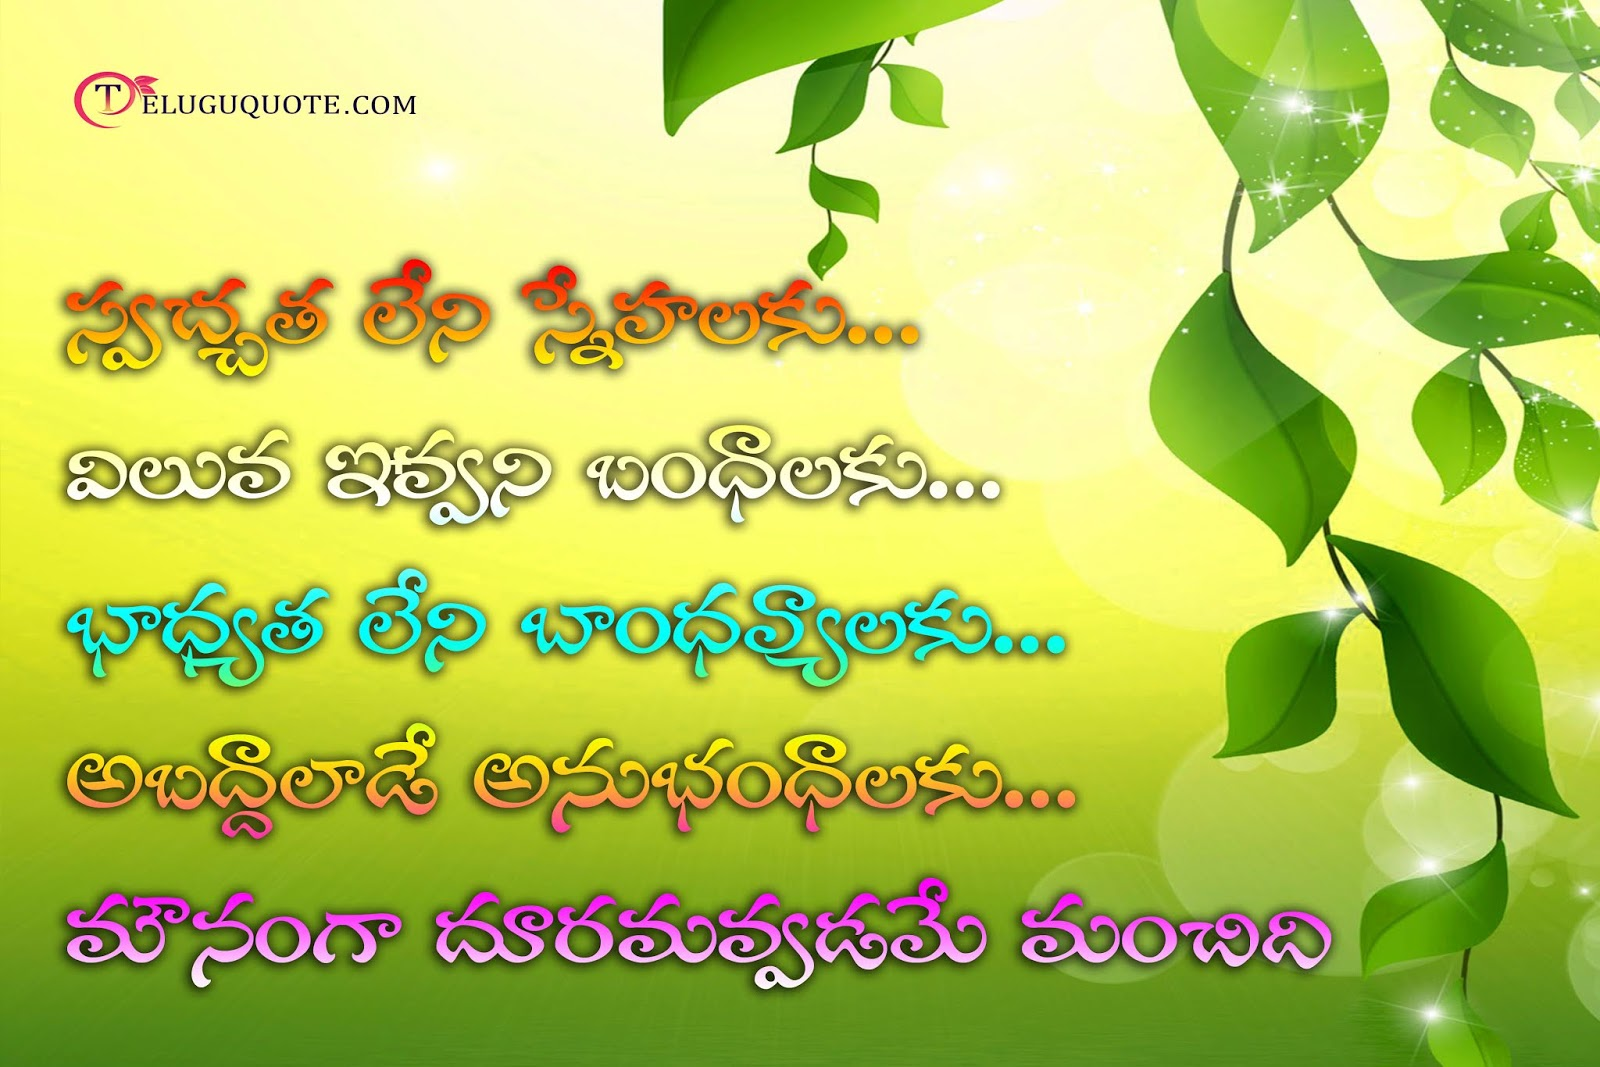 Friendship Quotations In Telugu Telugu Quotes